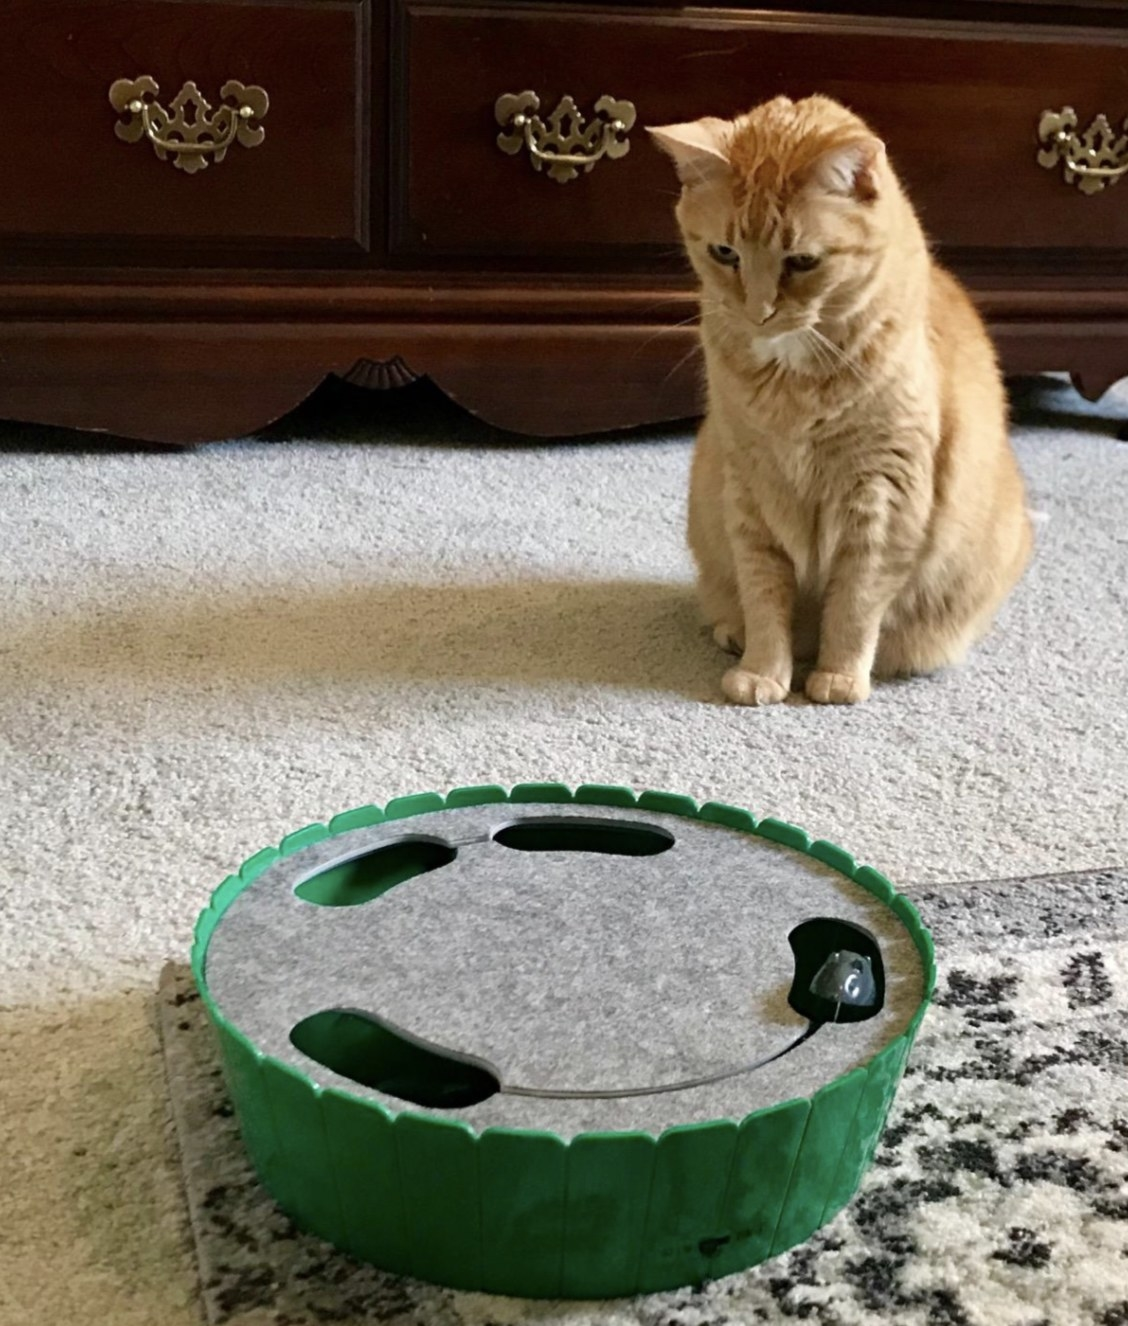 a cat starting at a green cat toy that has a running toy mouse in it